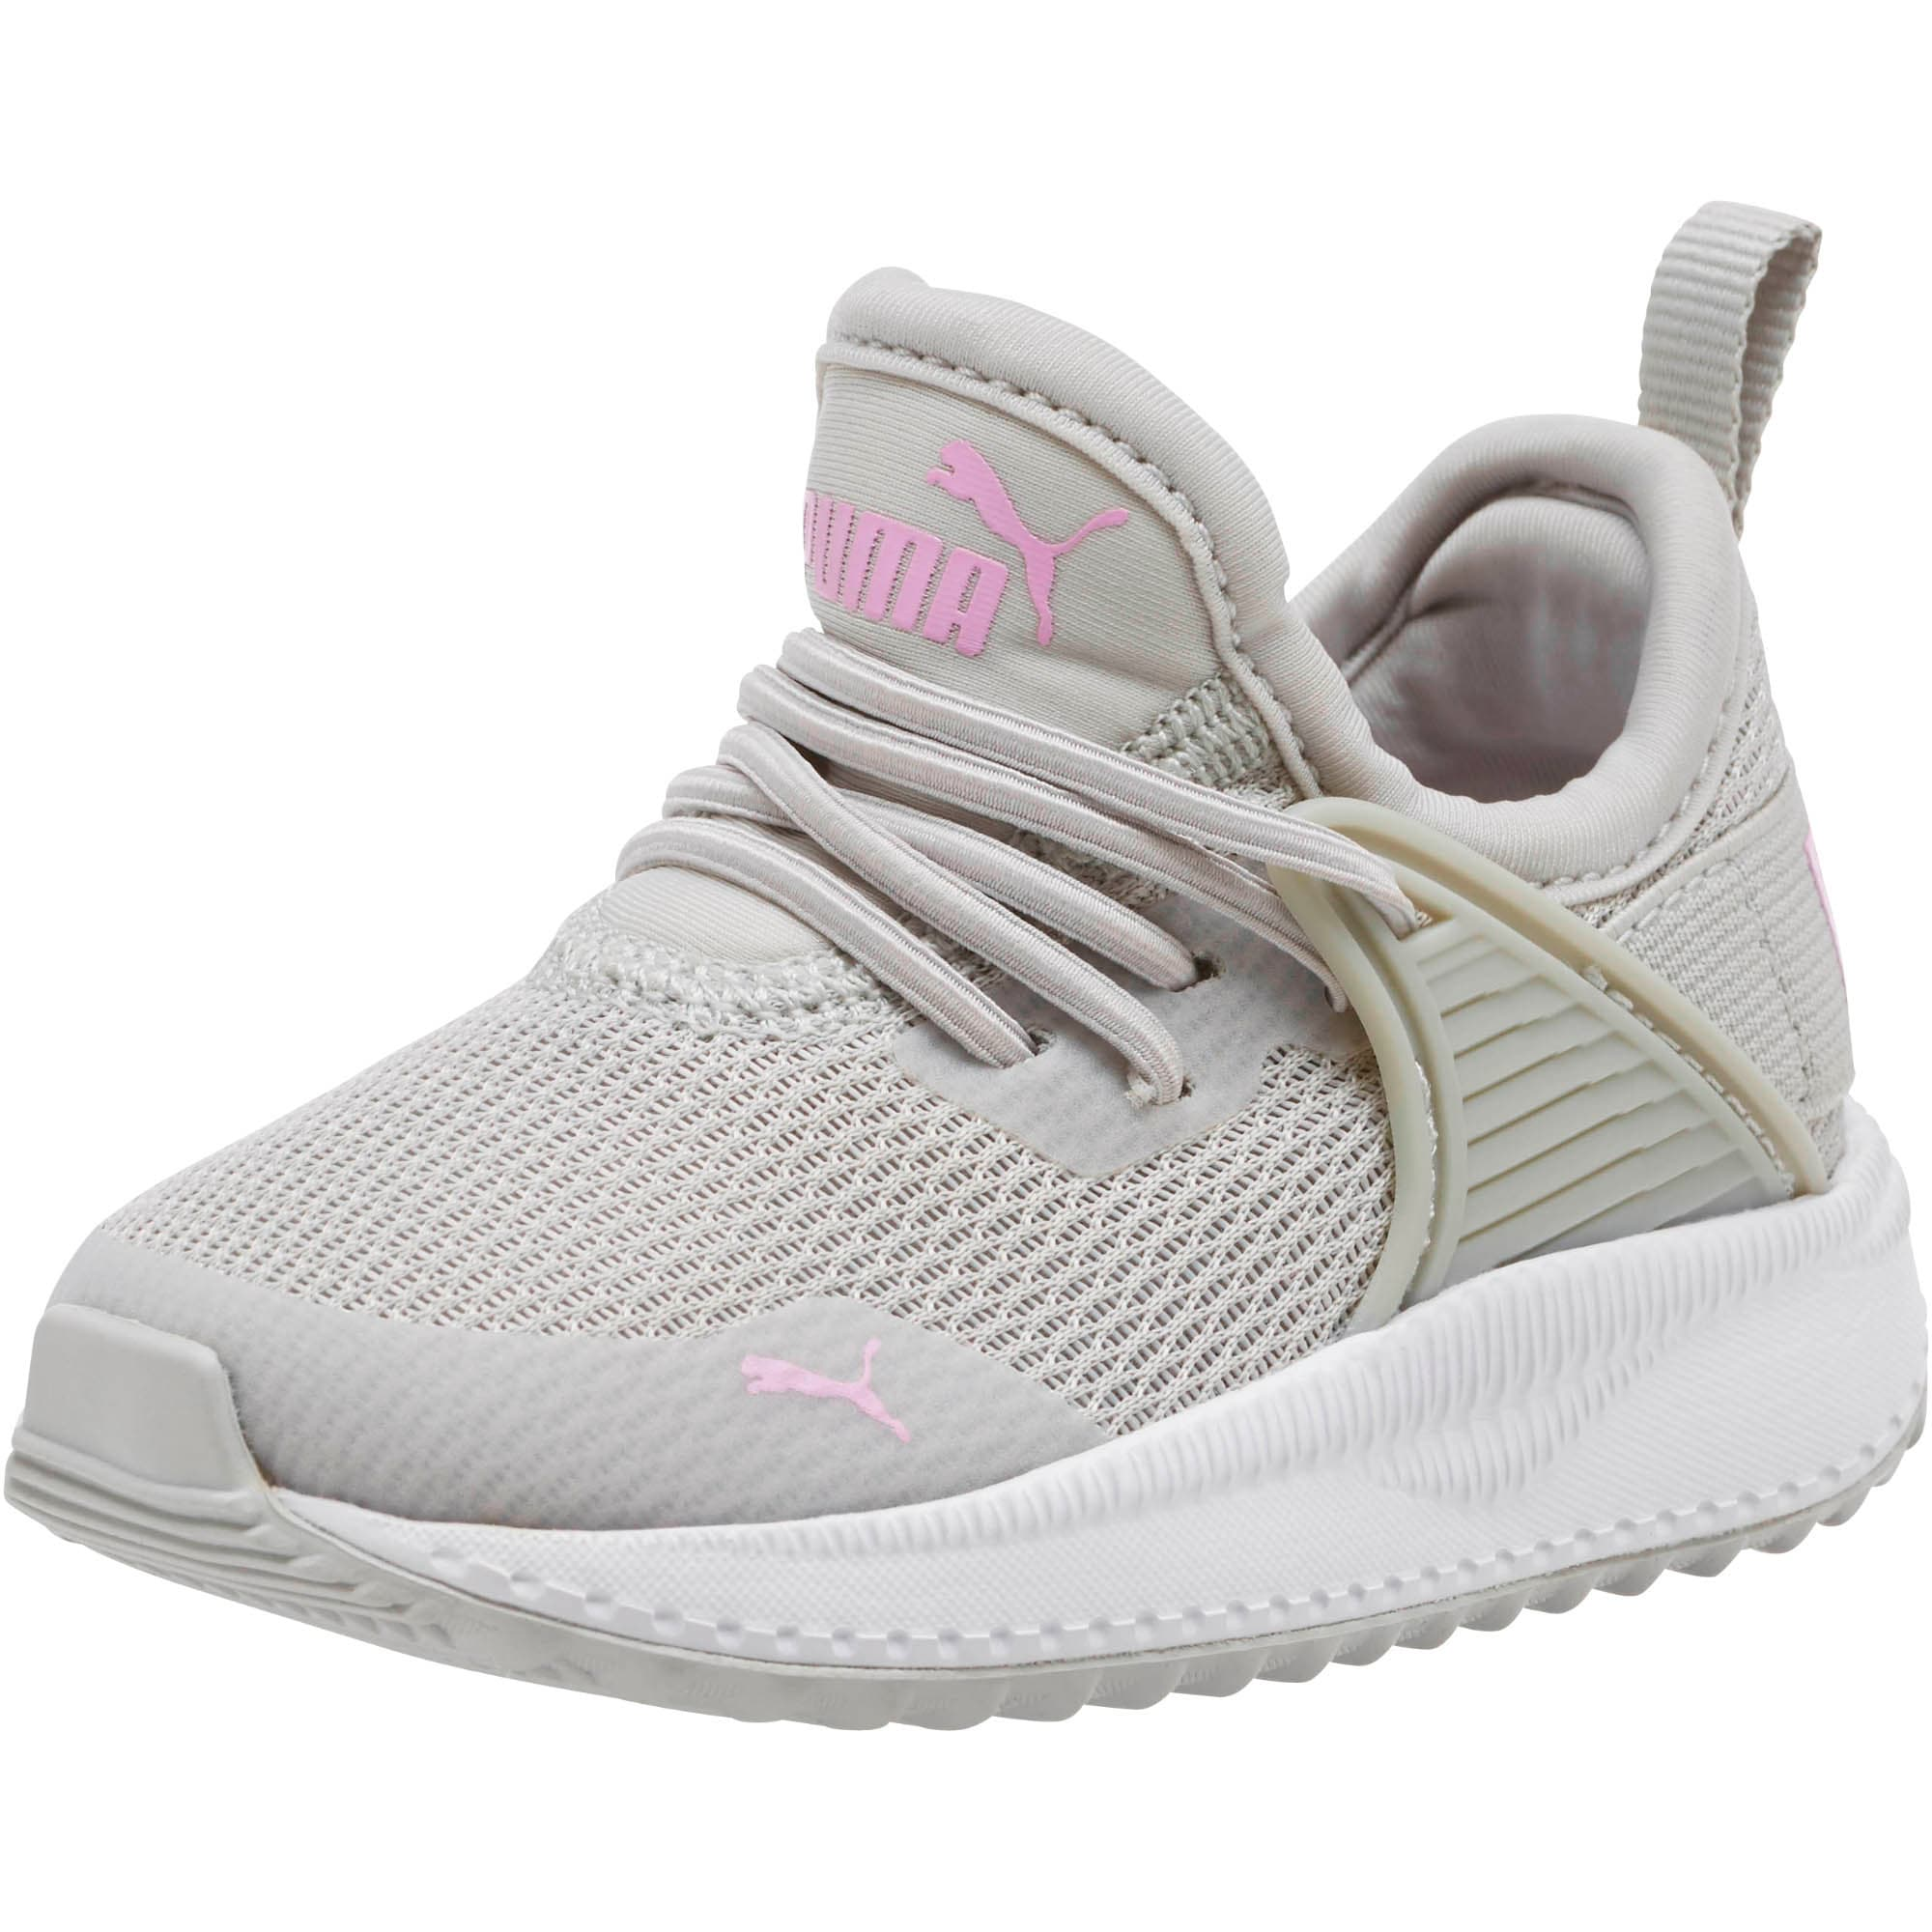 Thumbnail 1 of Pacer Next Cage AC Inf Shoes, Gray Violet-Orchid, medium